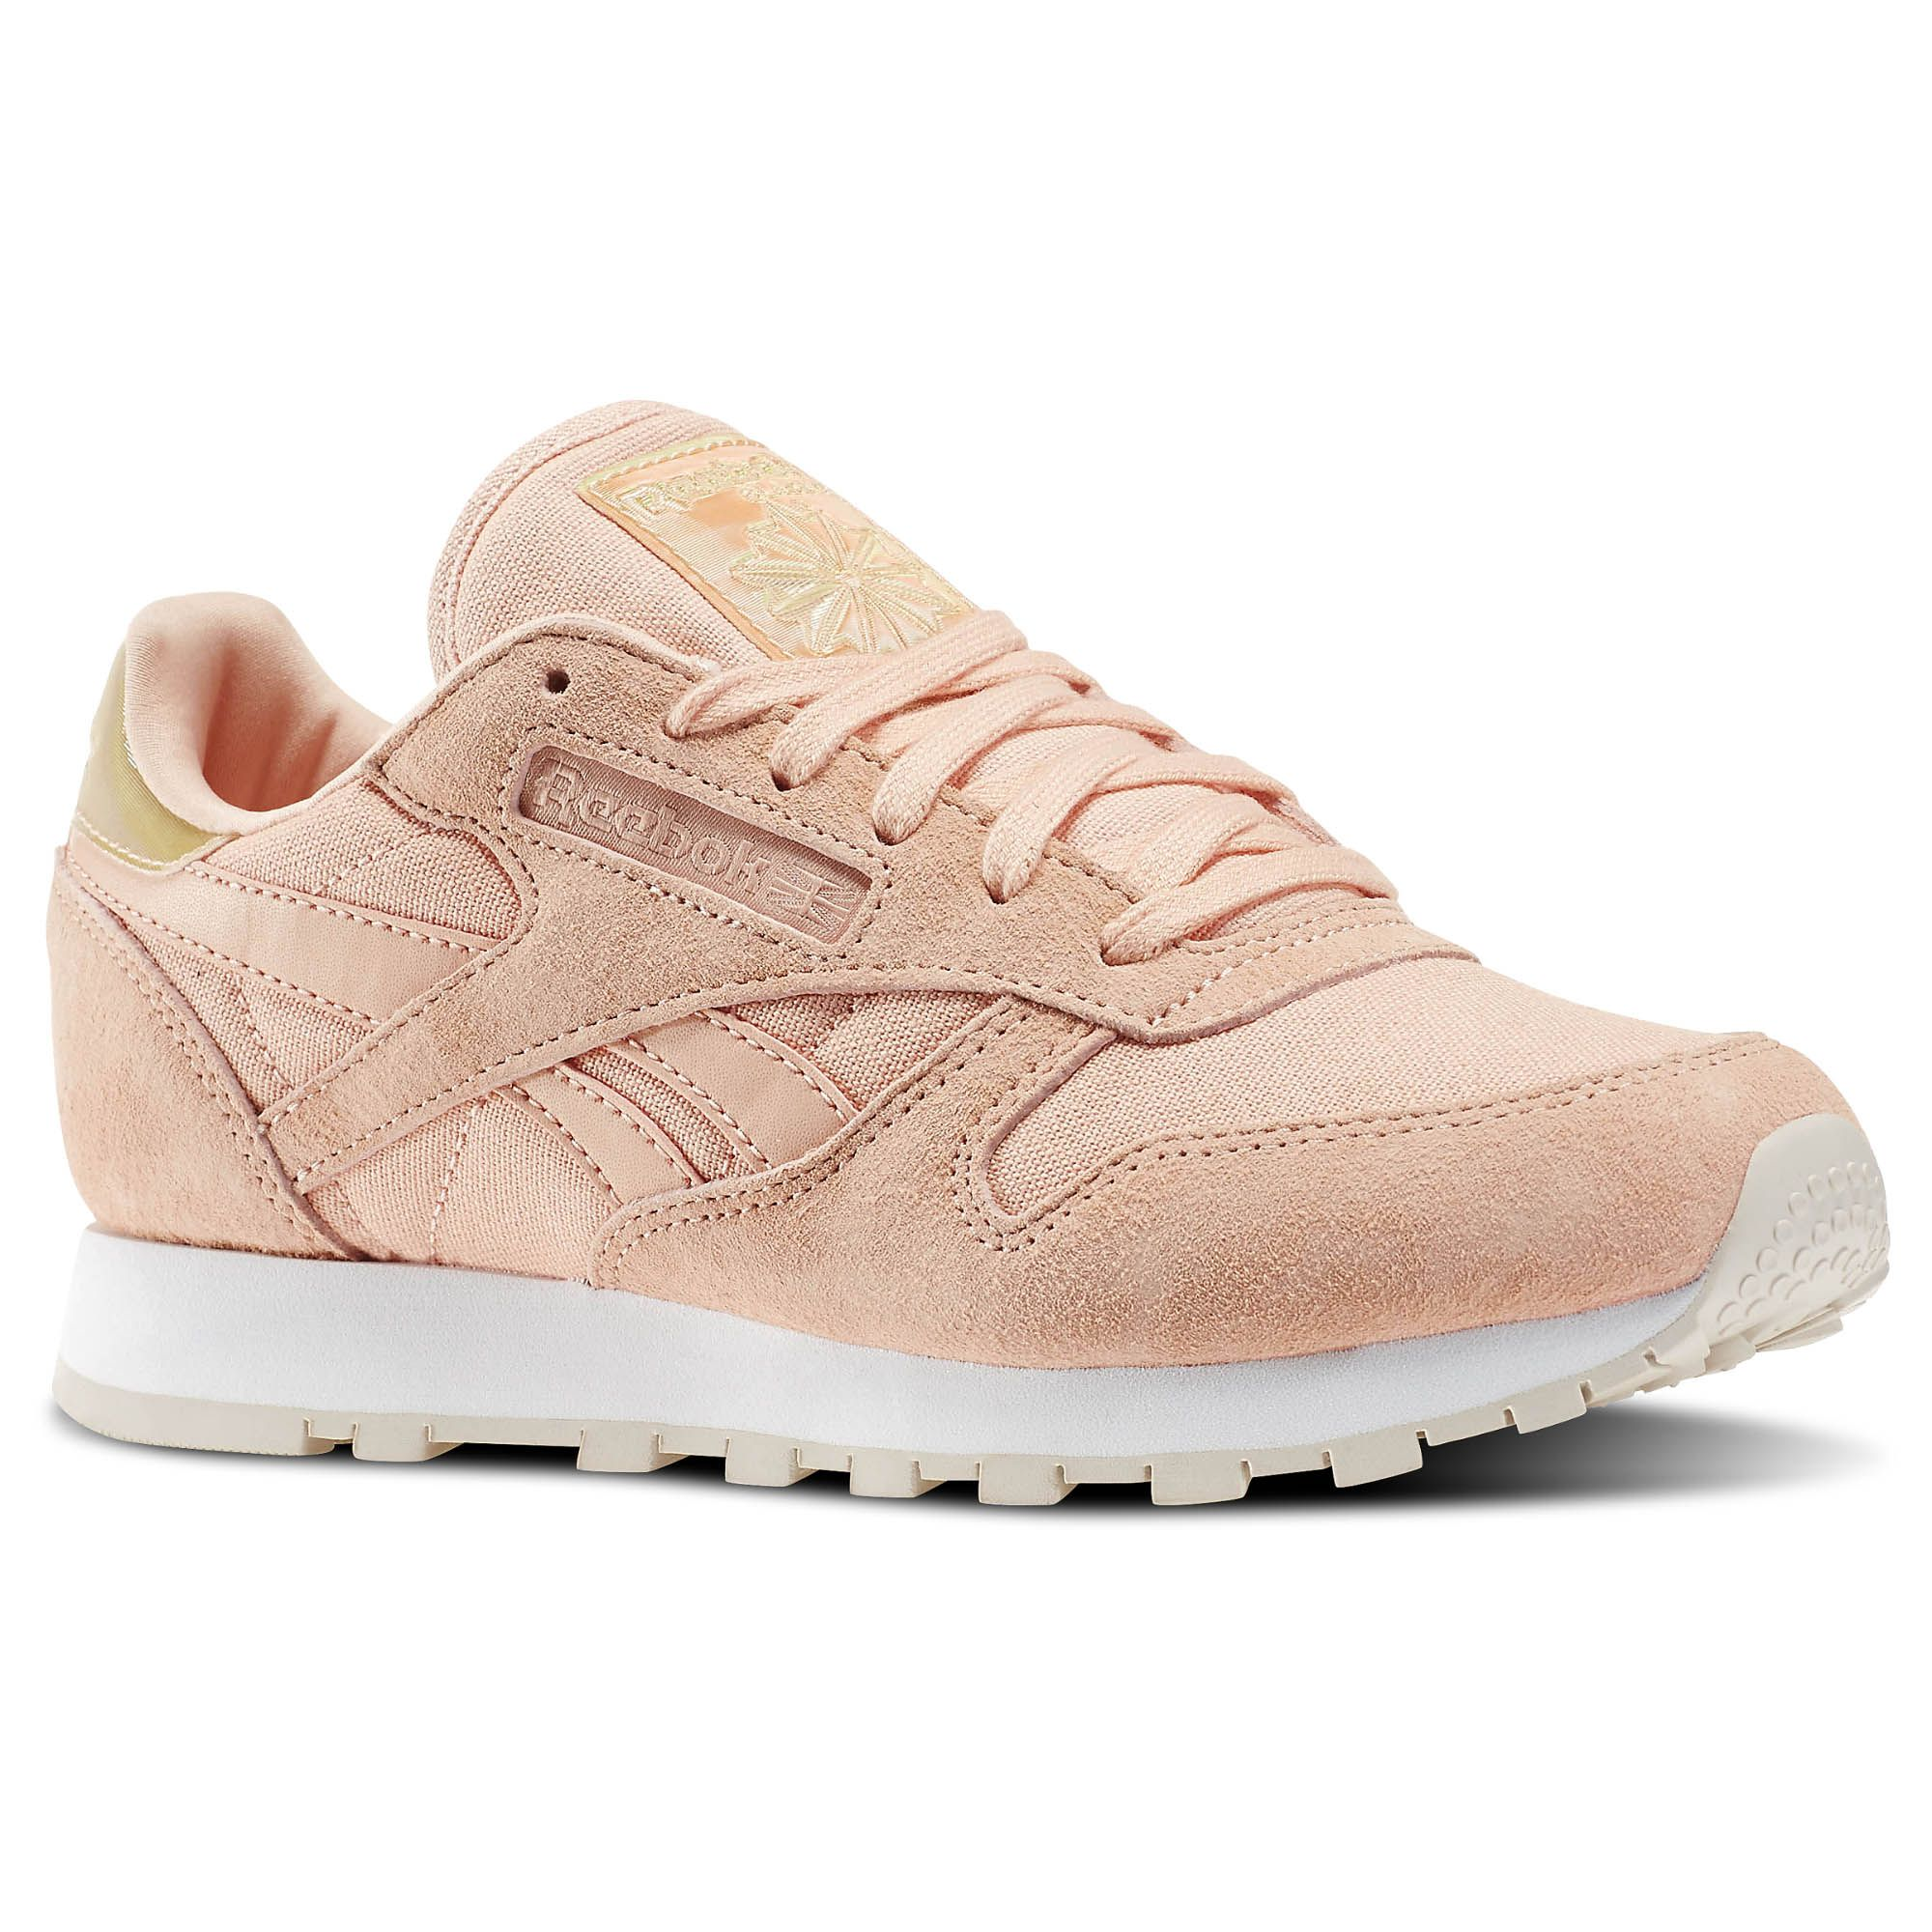 Chaussures Reebok roses femme